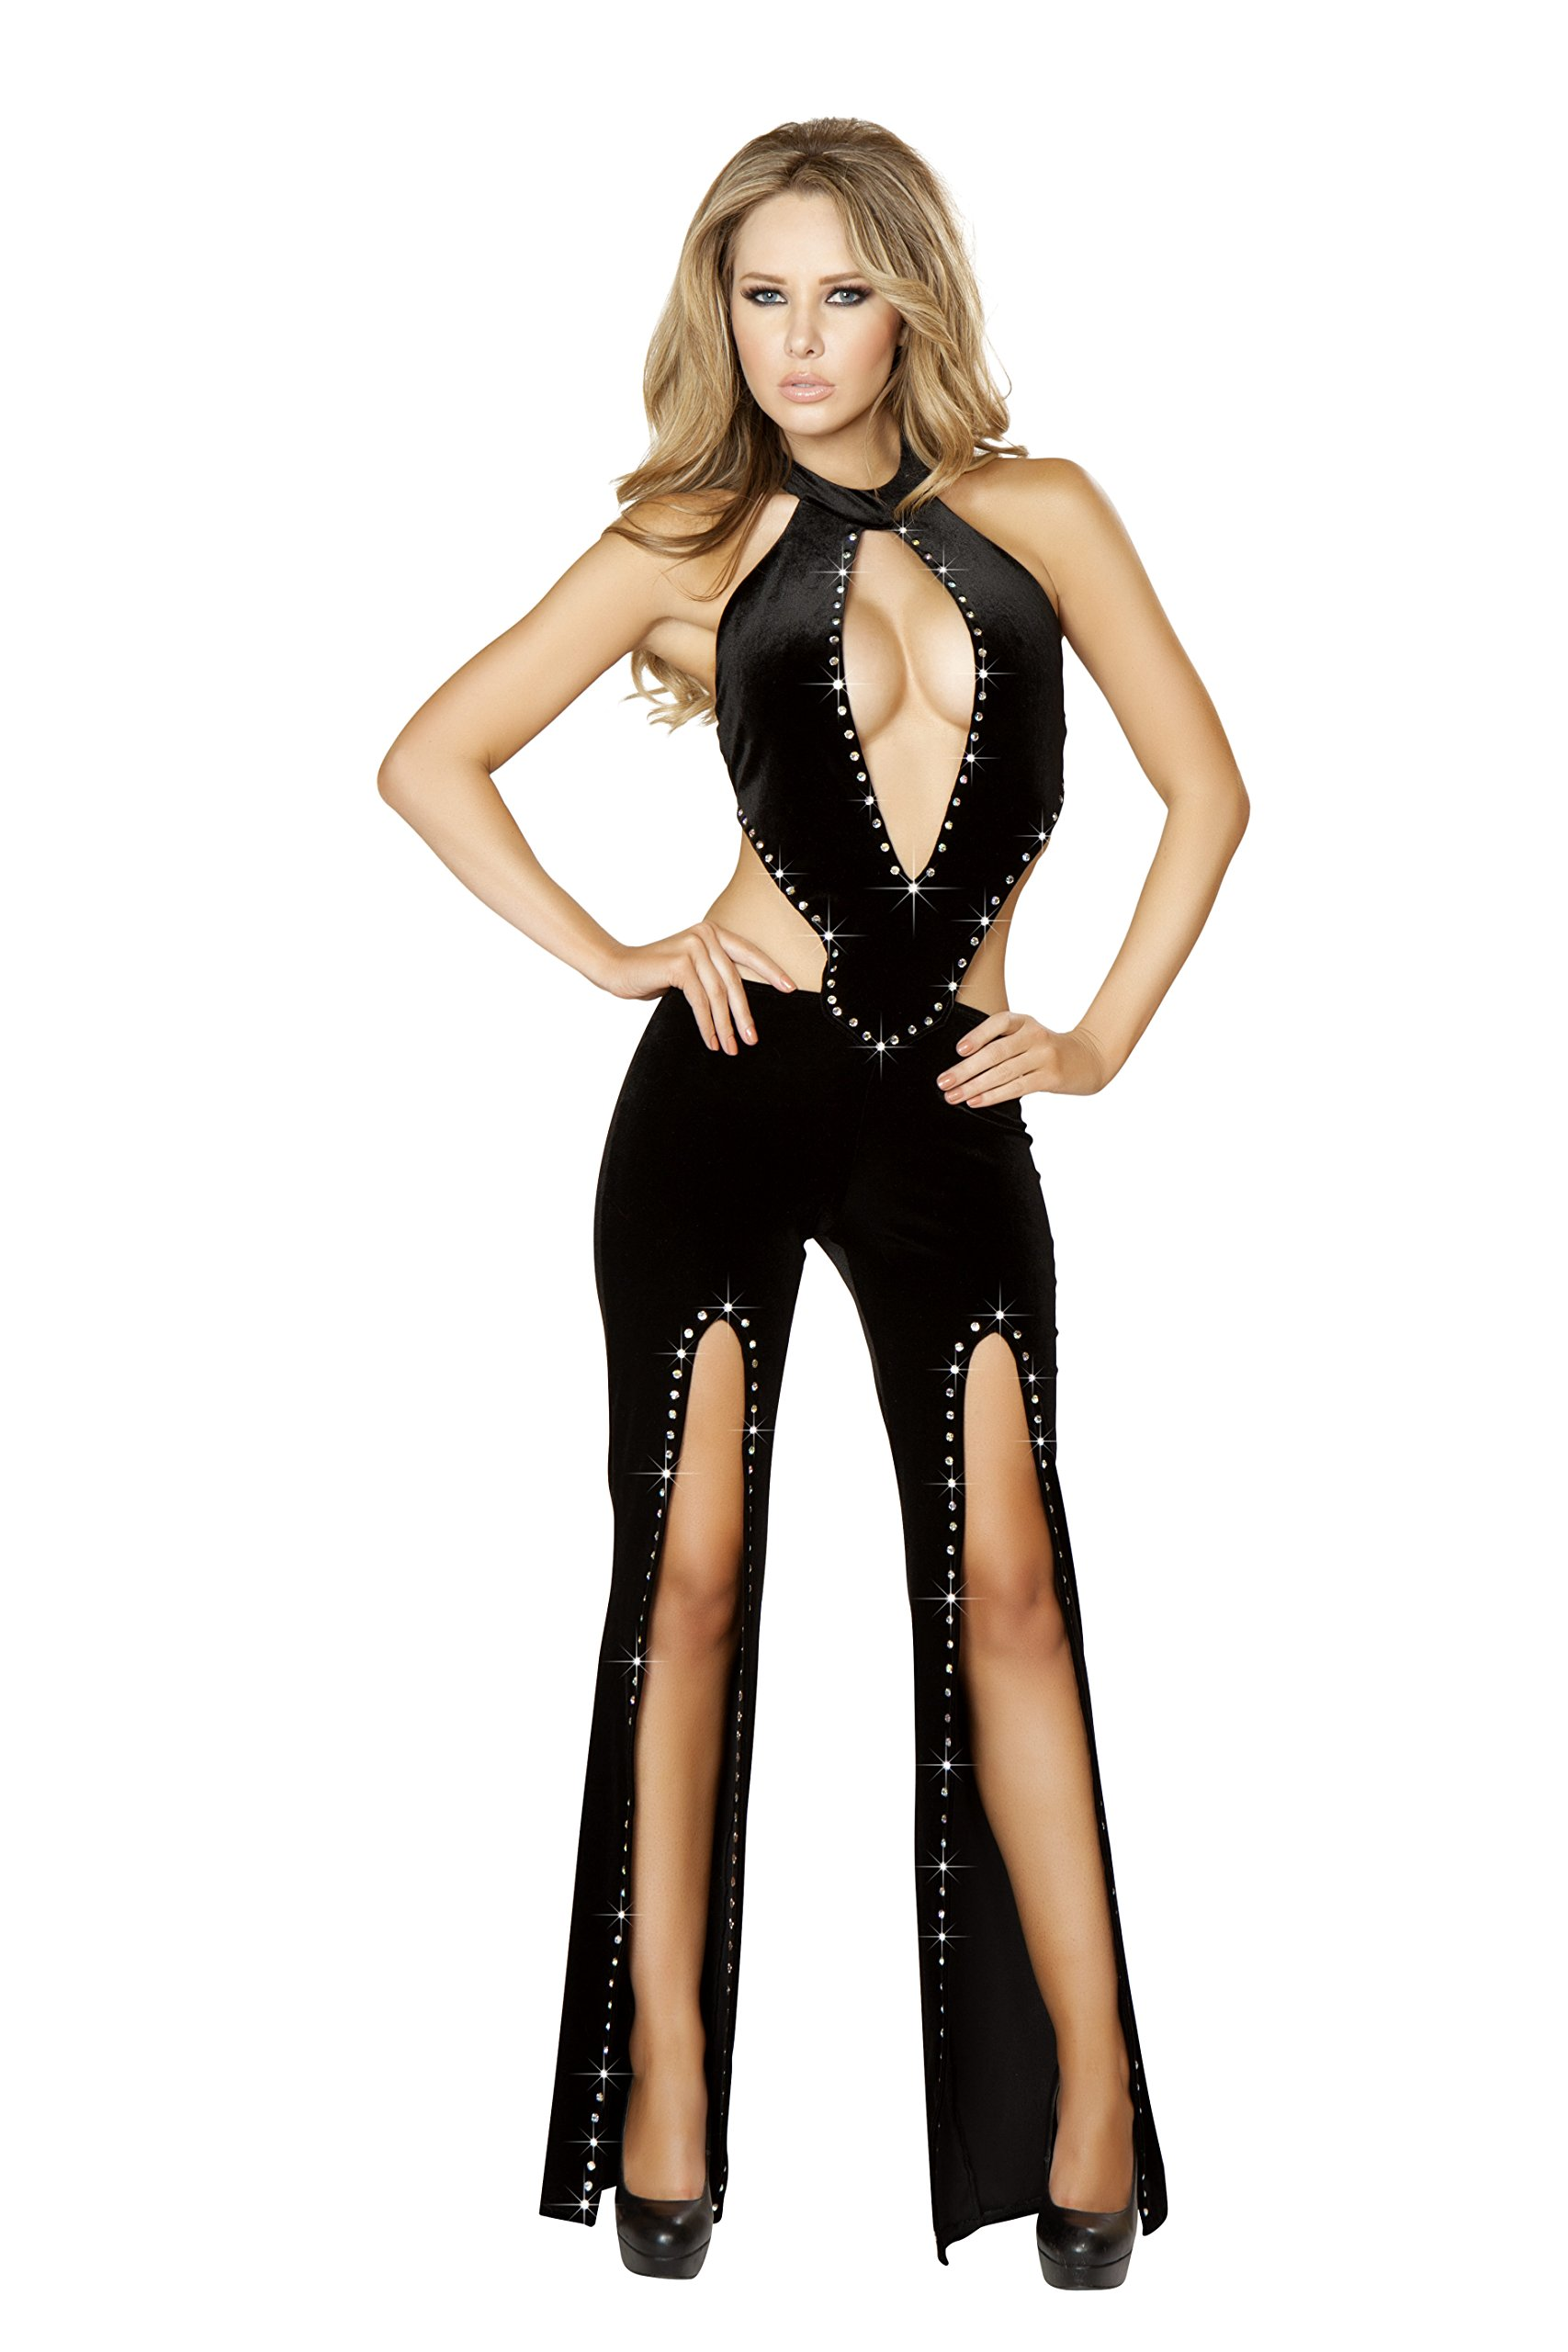 Roma Women's Velvet Cropped Jumpsuit with Slit Legs and Rhinestone Detail, Black, Large by Roma Costume